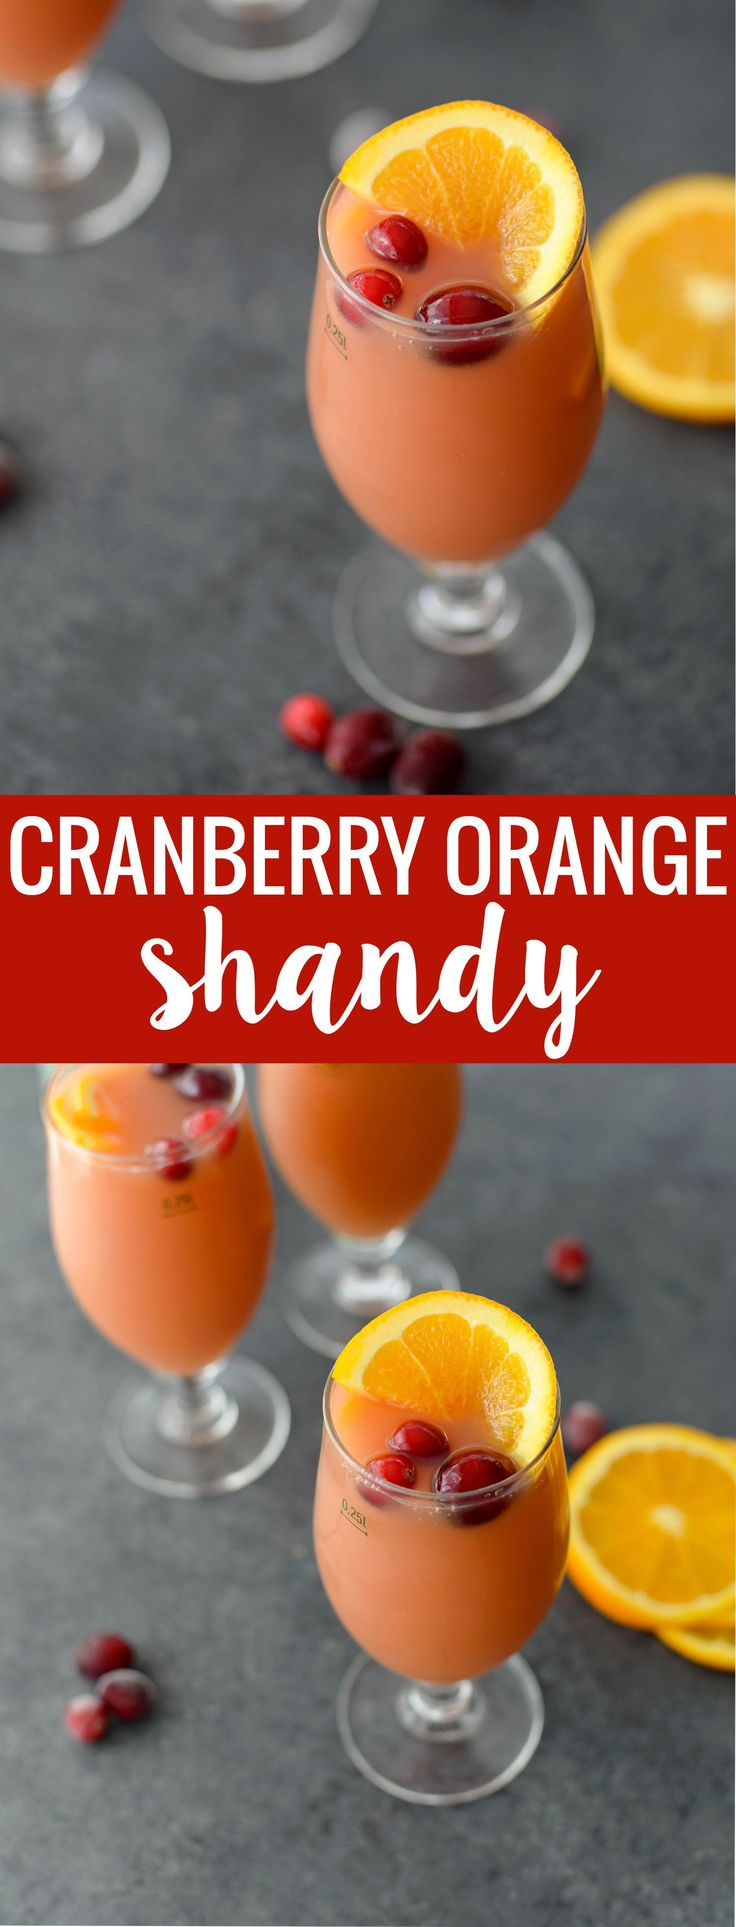 Cranberry Orange Beer Shandy! You've gotta try this three ingredient cocktail, perfect for holiday and christmas entertaining. Refreshing, delicious and can easily be made into pitchers for parties. | www.delishknowledge.com #cocktailrecipes